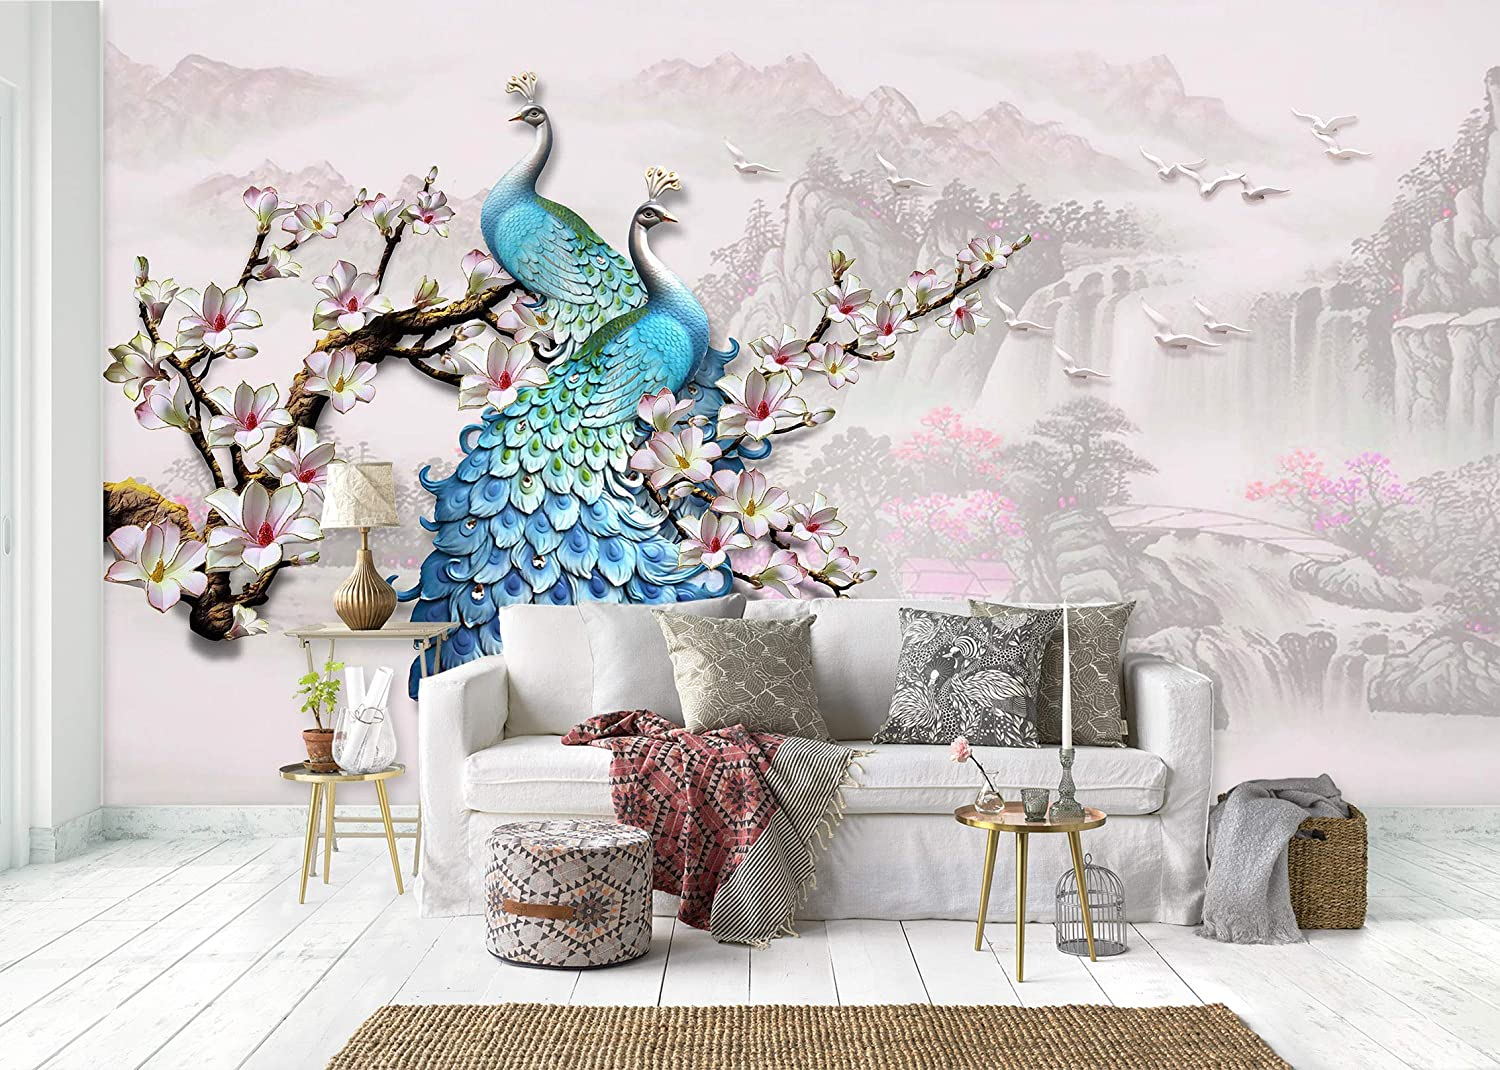 Max 54% OFF 3D Carved Flower Peacock 0256 Wall Print Max 64% OFF Deco Paper M Decal